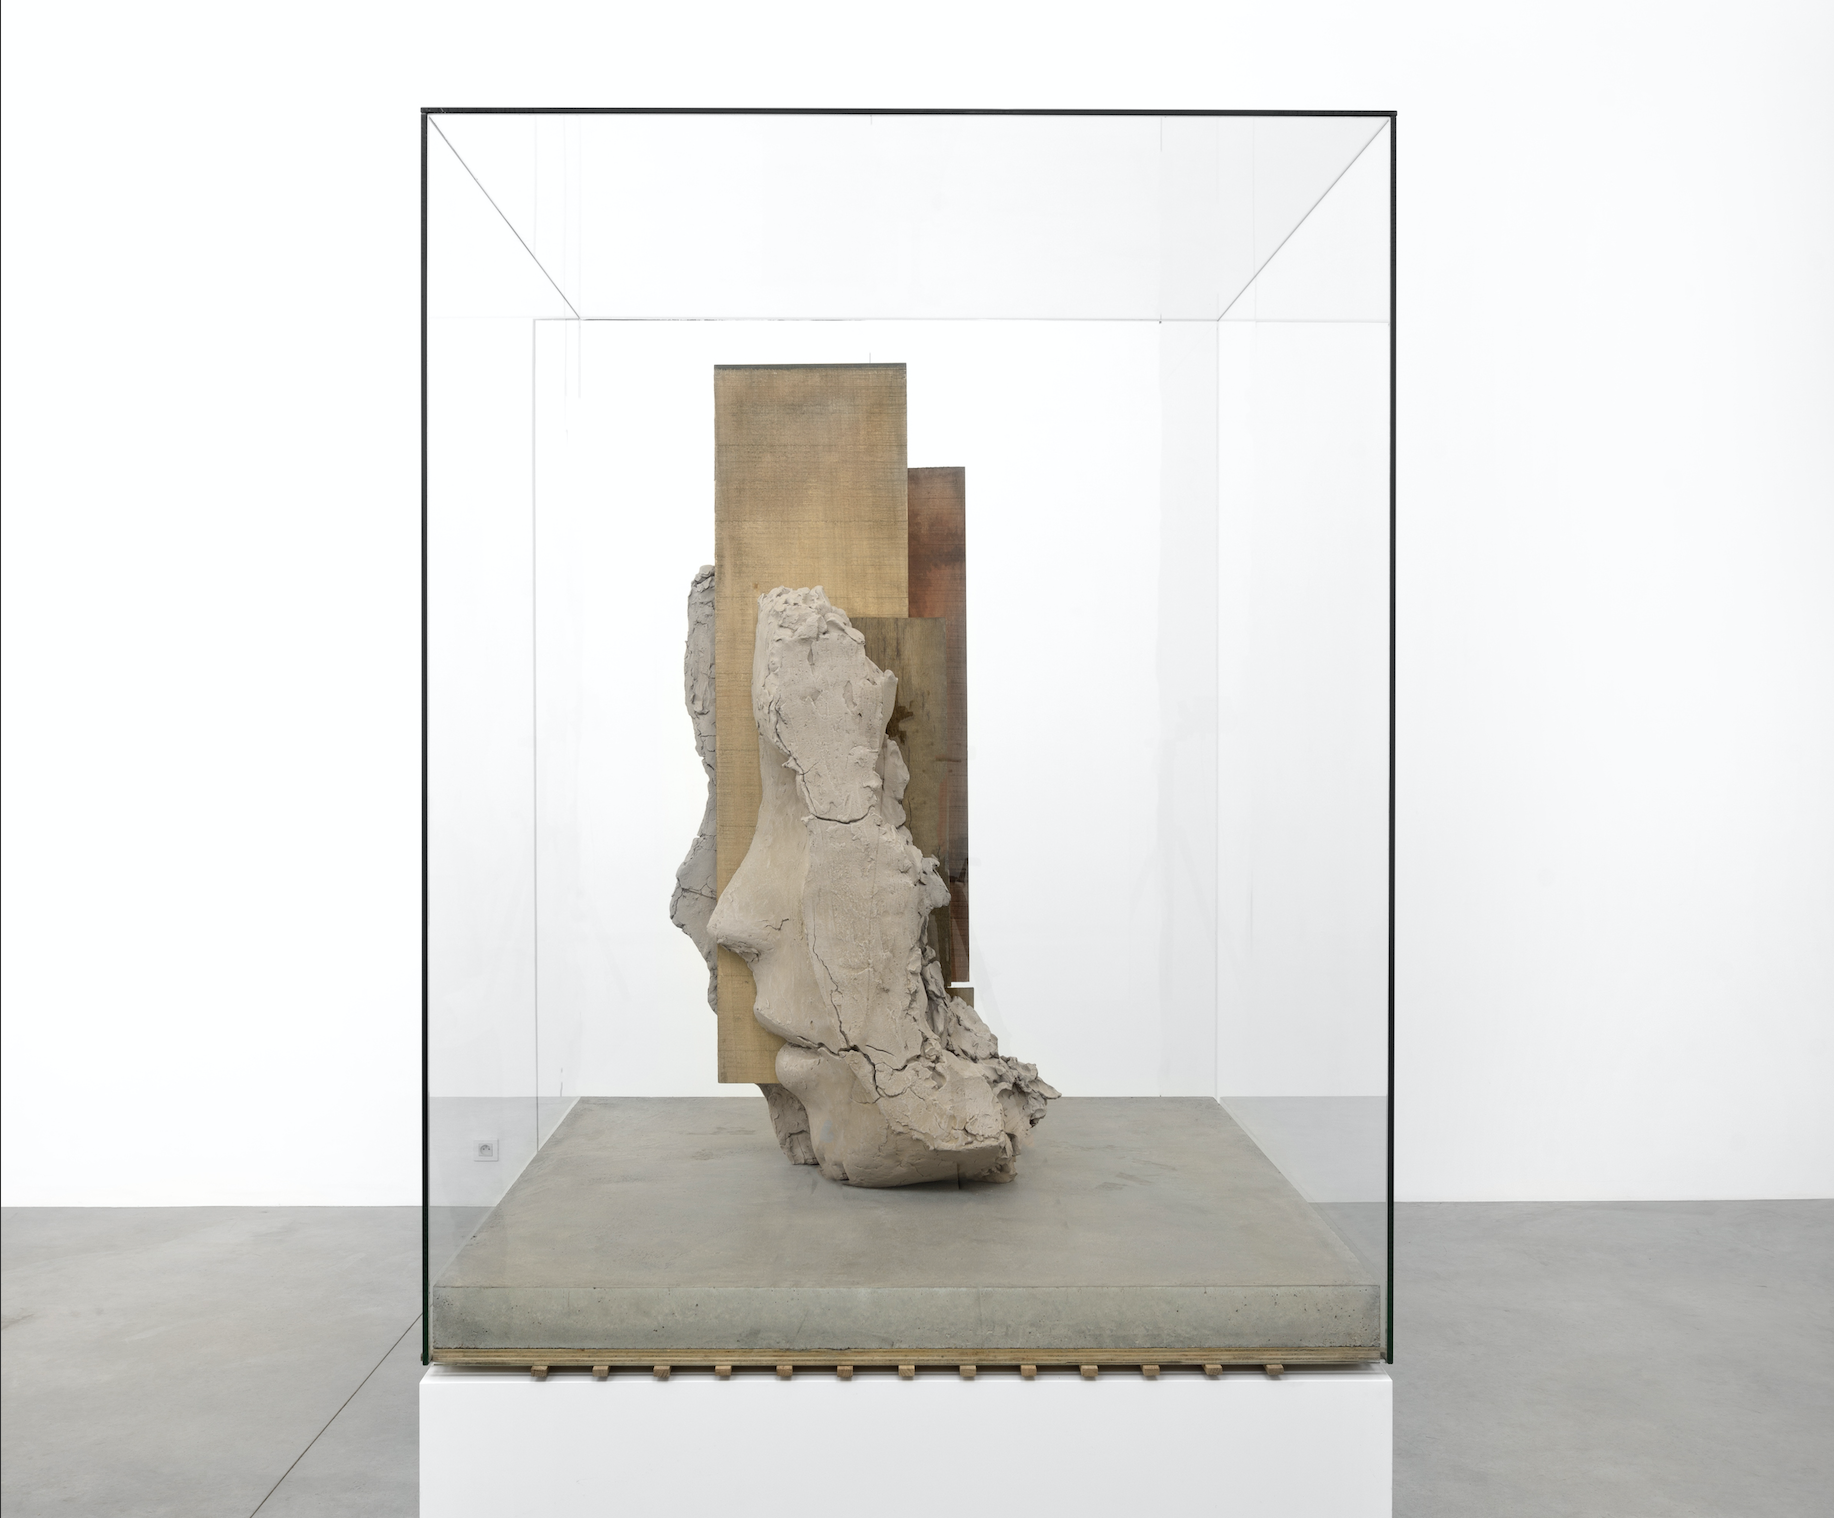 Mark Manders, Dry Clay Head on Concrete Floor. foto: Lotte Stekelenburg